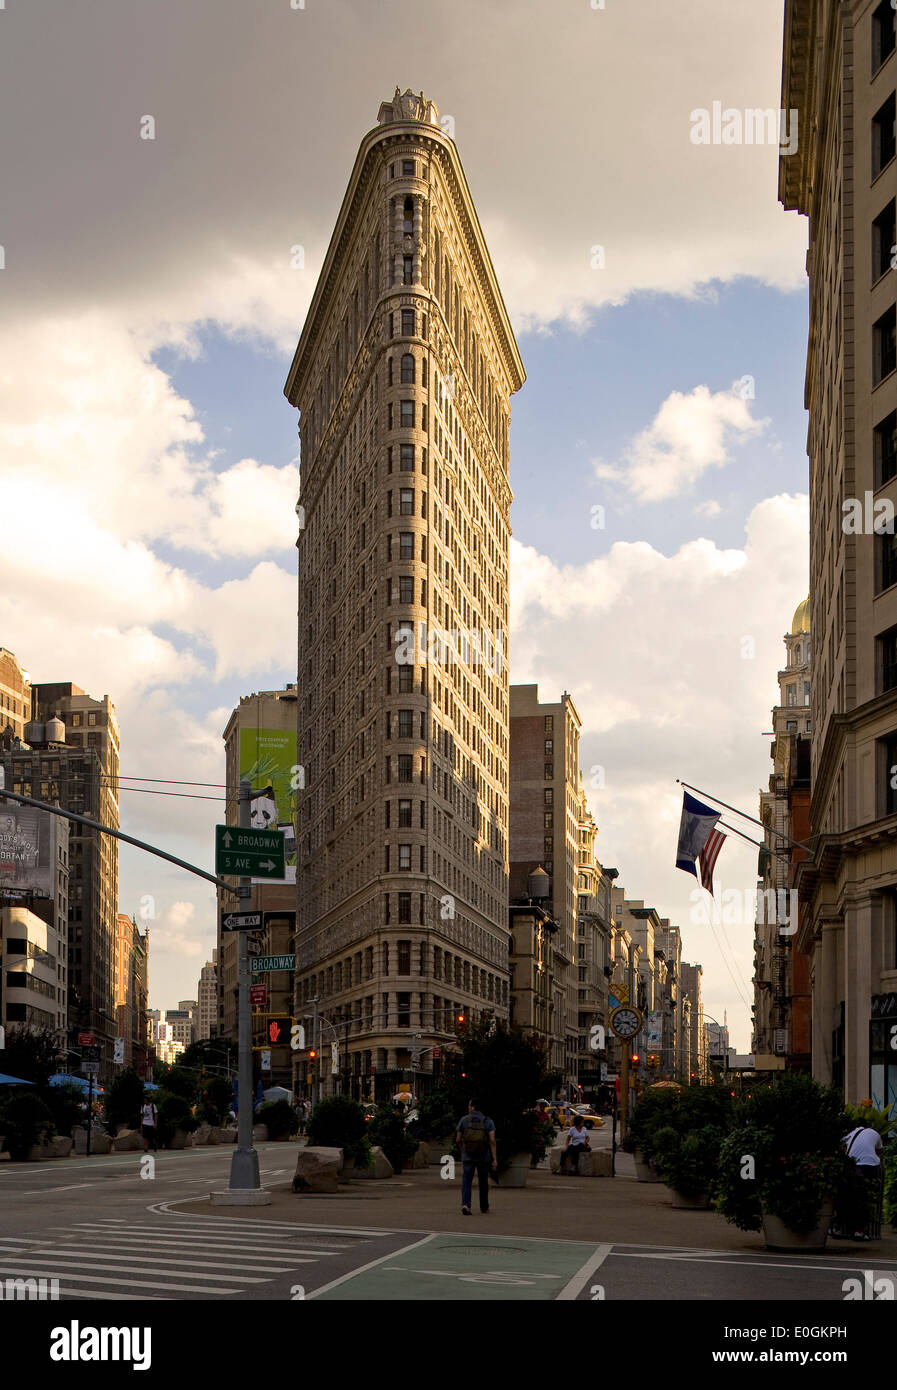 Flatiron Building, Fuller Building, known for its unusual triangular shape, at the crossing to 5th avanue, Broadway and 23rd str - Stock Image